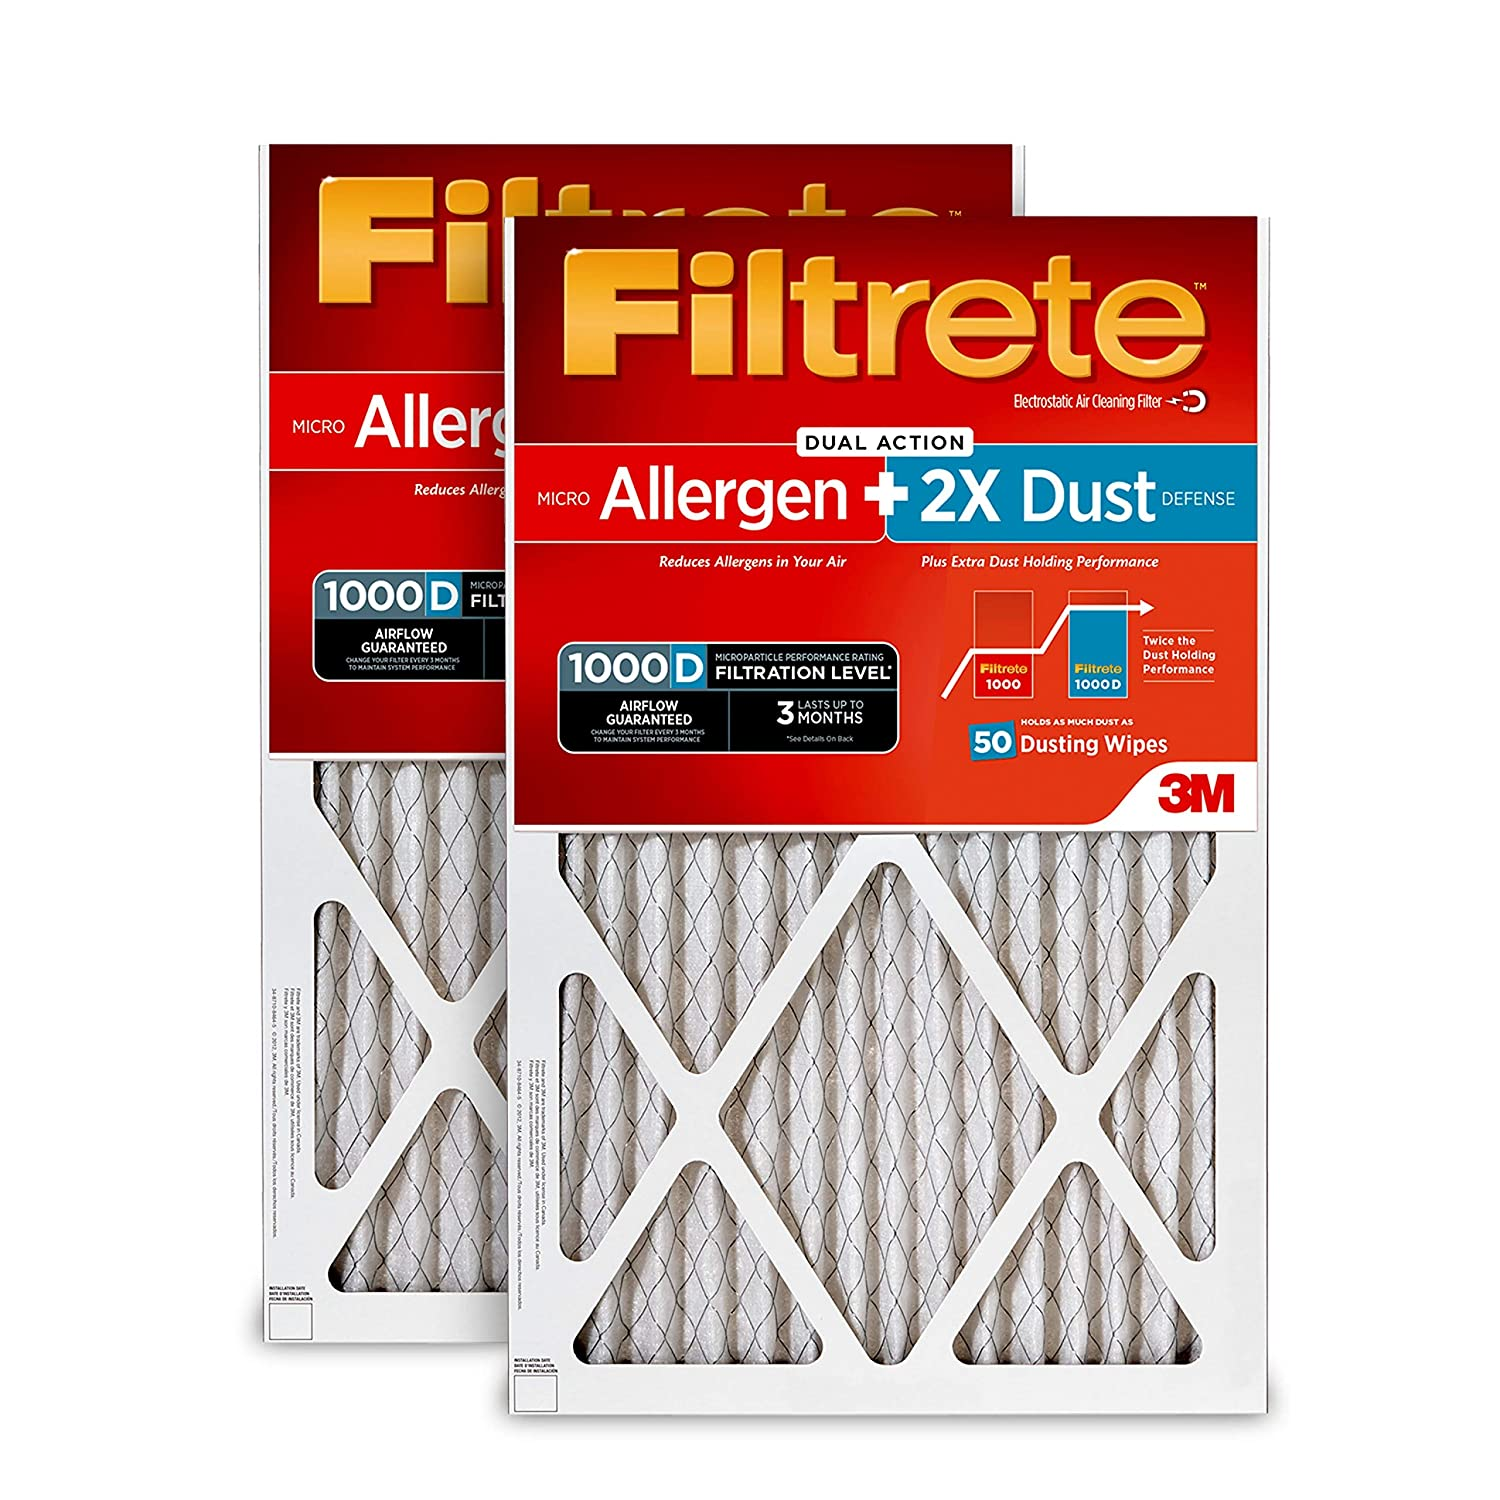 Filtrete 14x20x1, AC Furnace Air Filter, MPR 1000D, Micro Allergen PLUS DUST, 2-Pack